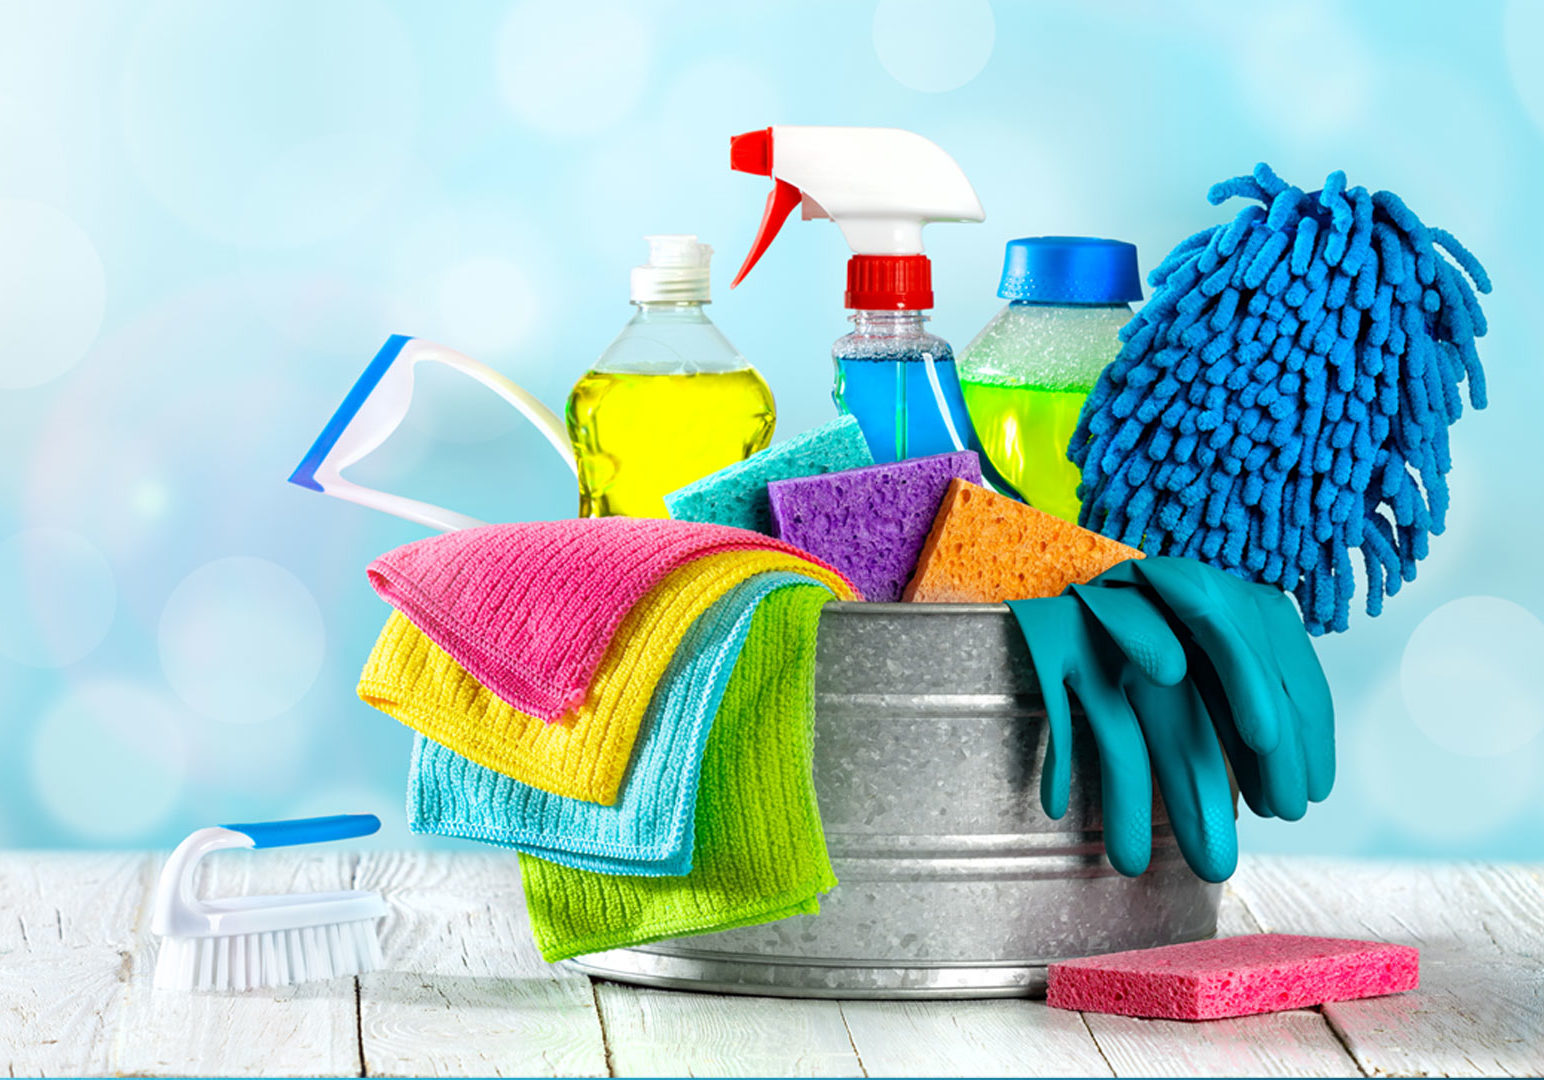 Thumbnail_Online_Use-of-Chemicals-in-the-Home_AOC17067